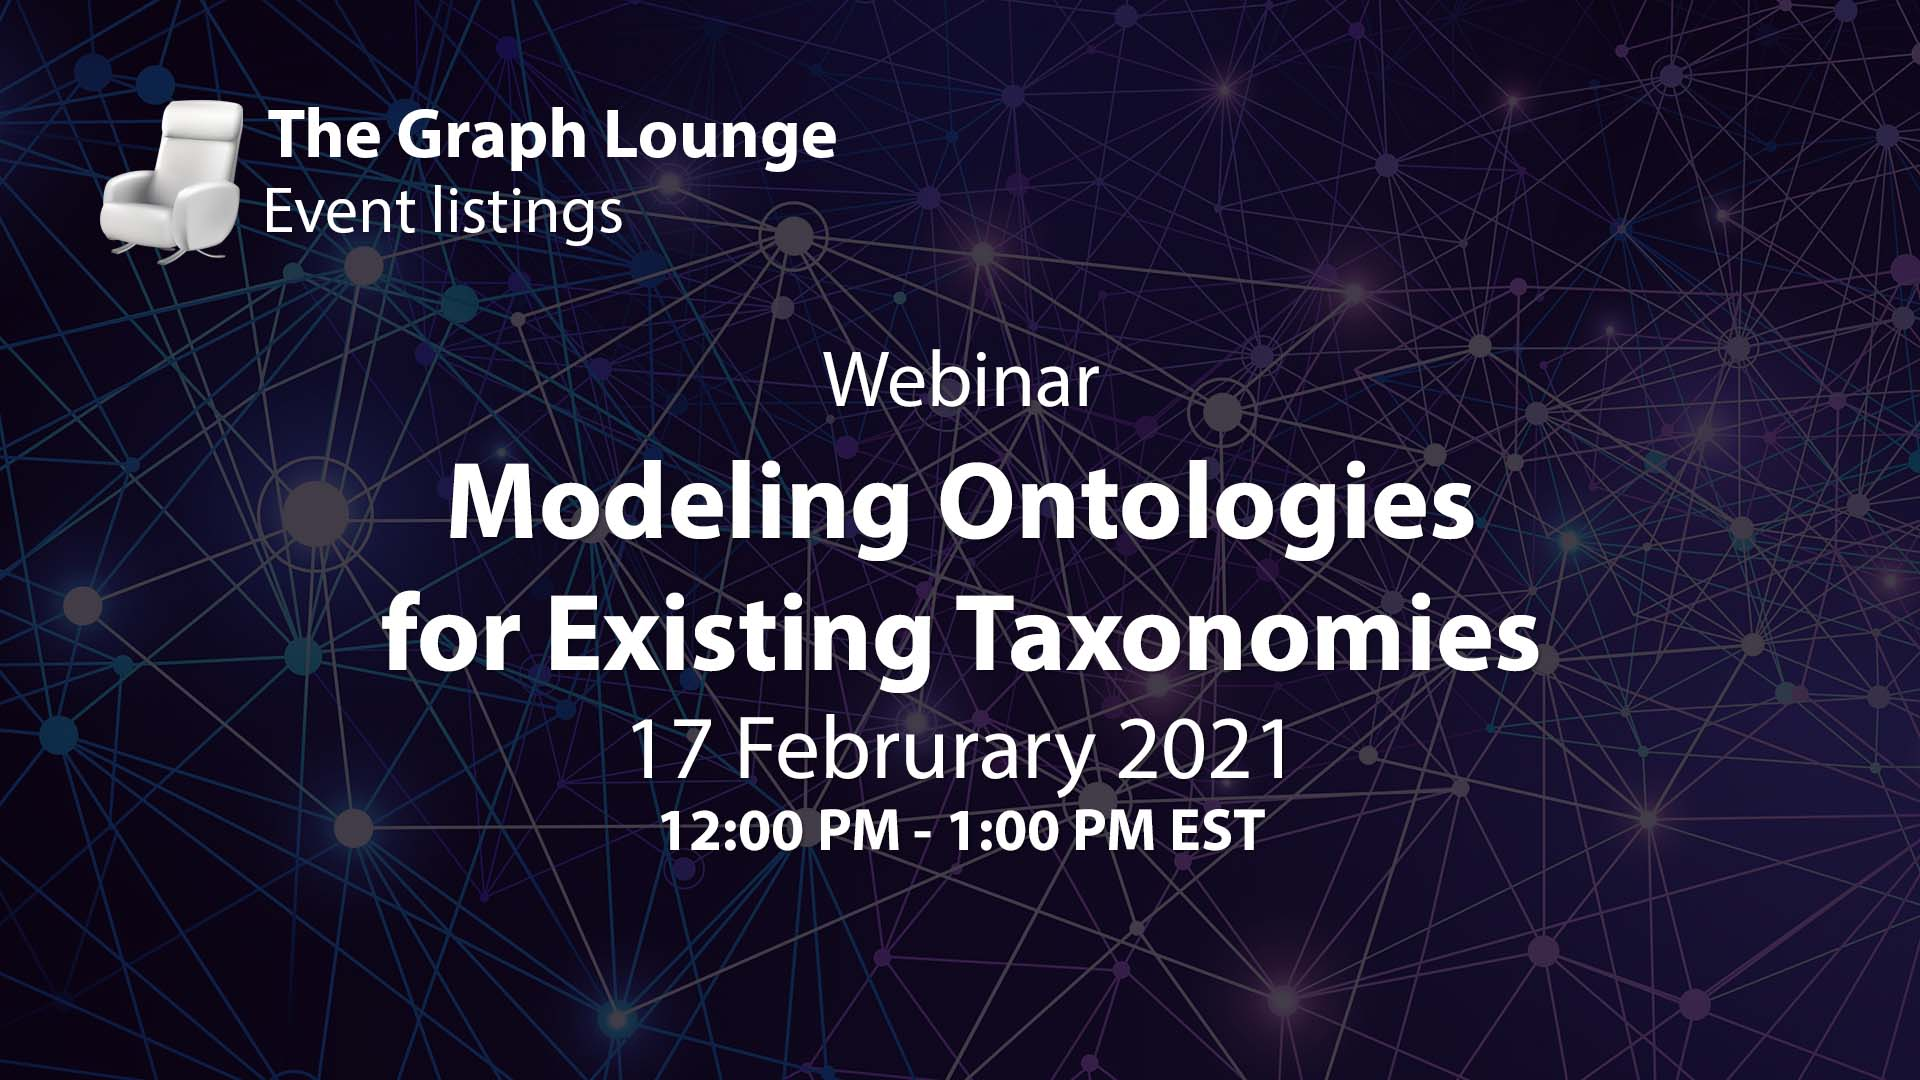 Modeling Ontologies for Existing Taxonomies